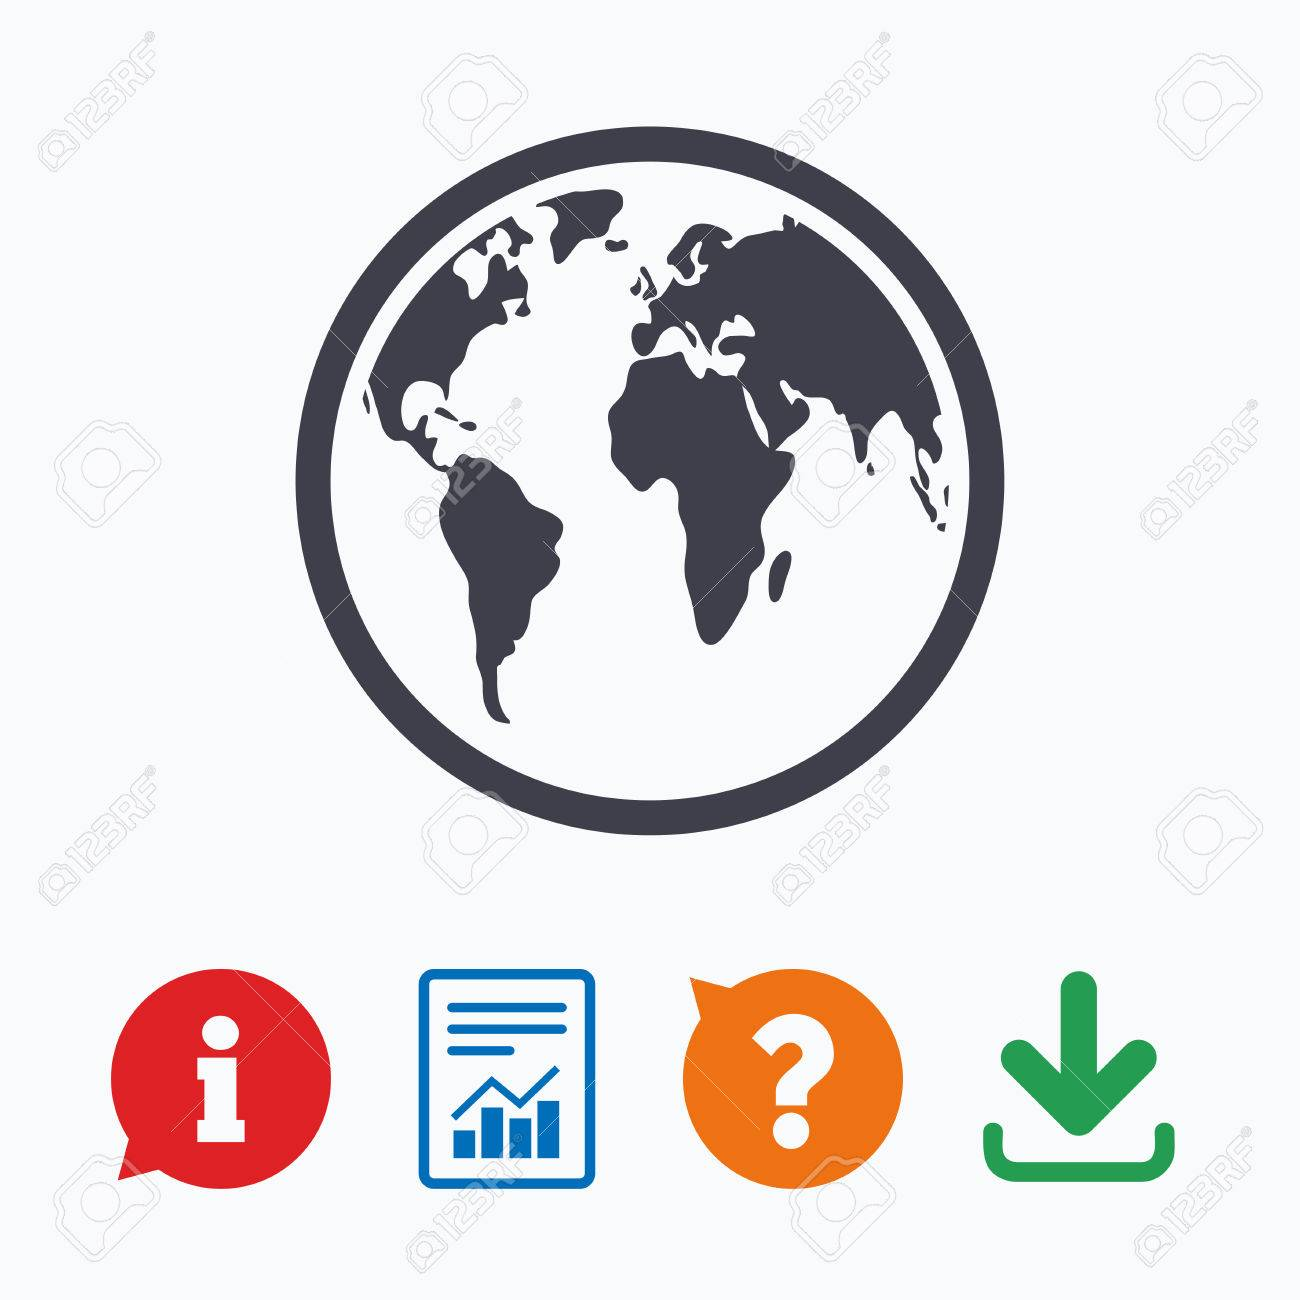 Globe sign icon world map geography symbol information think globe sign icon world map geography symbol information think bubble question mark gumiabroncs Choice Image